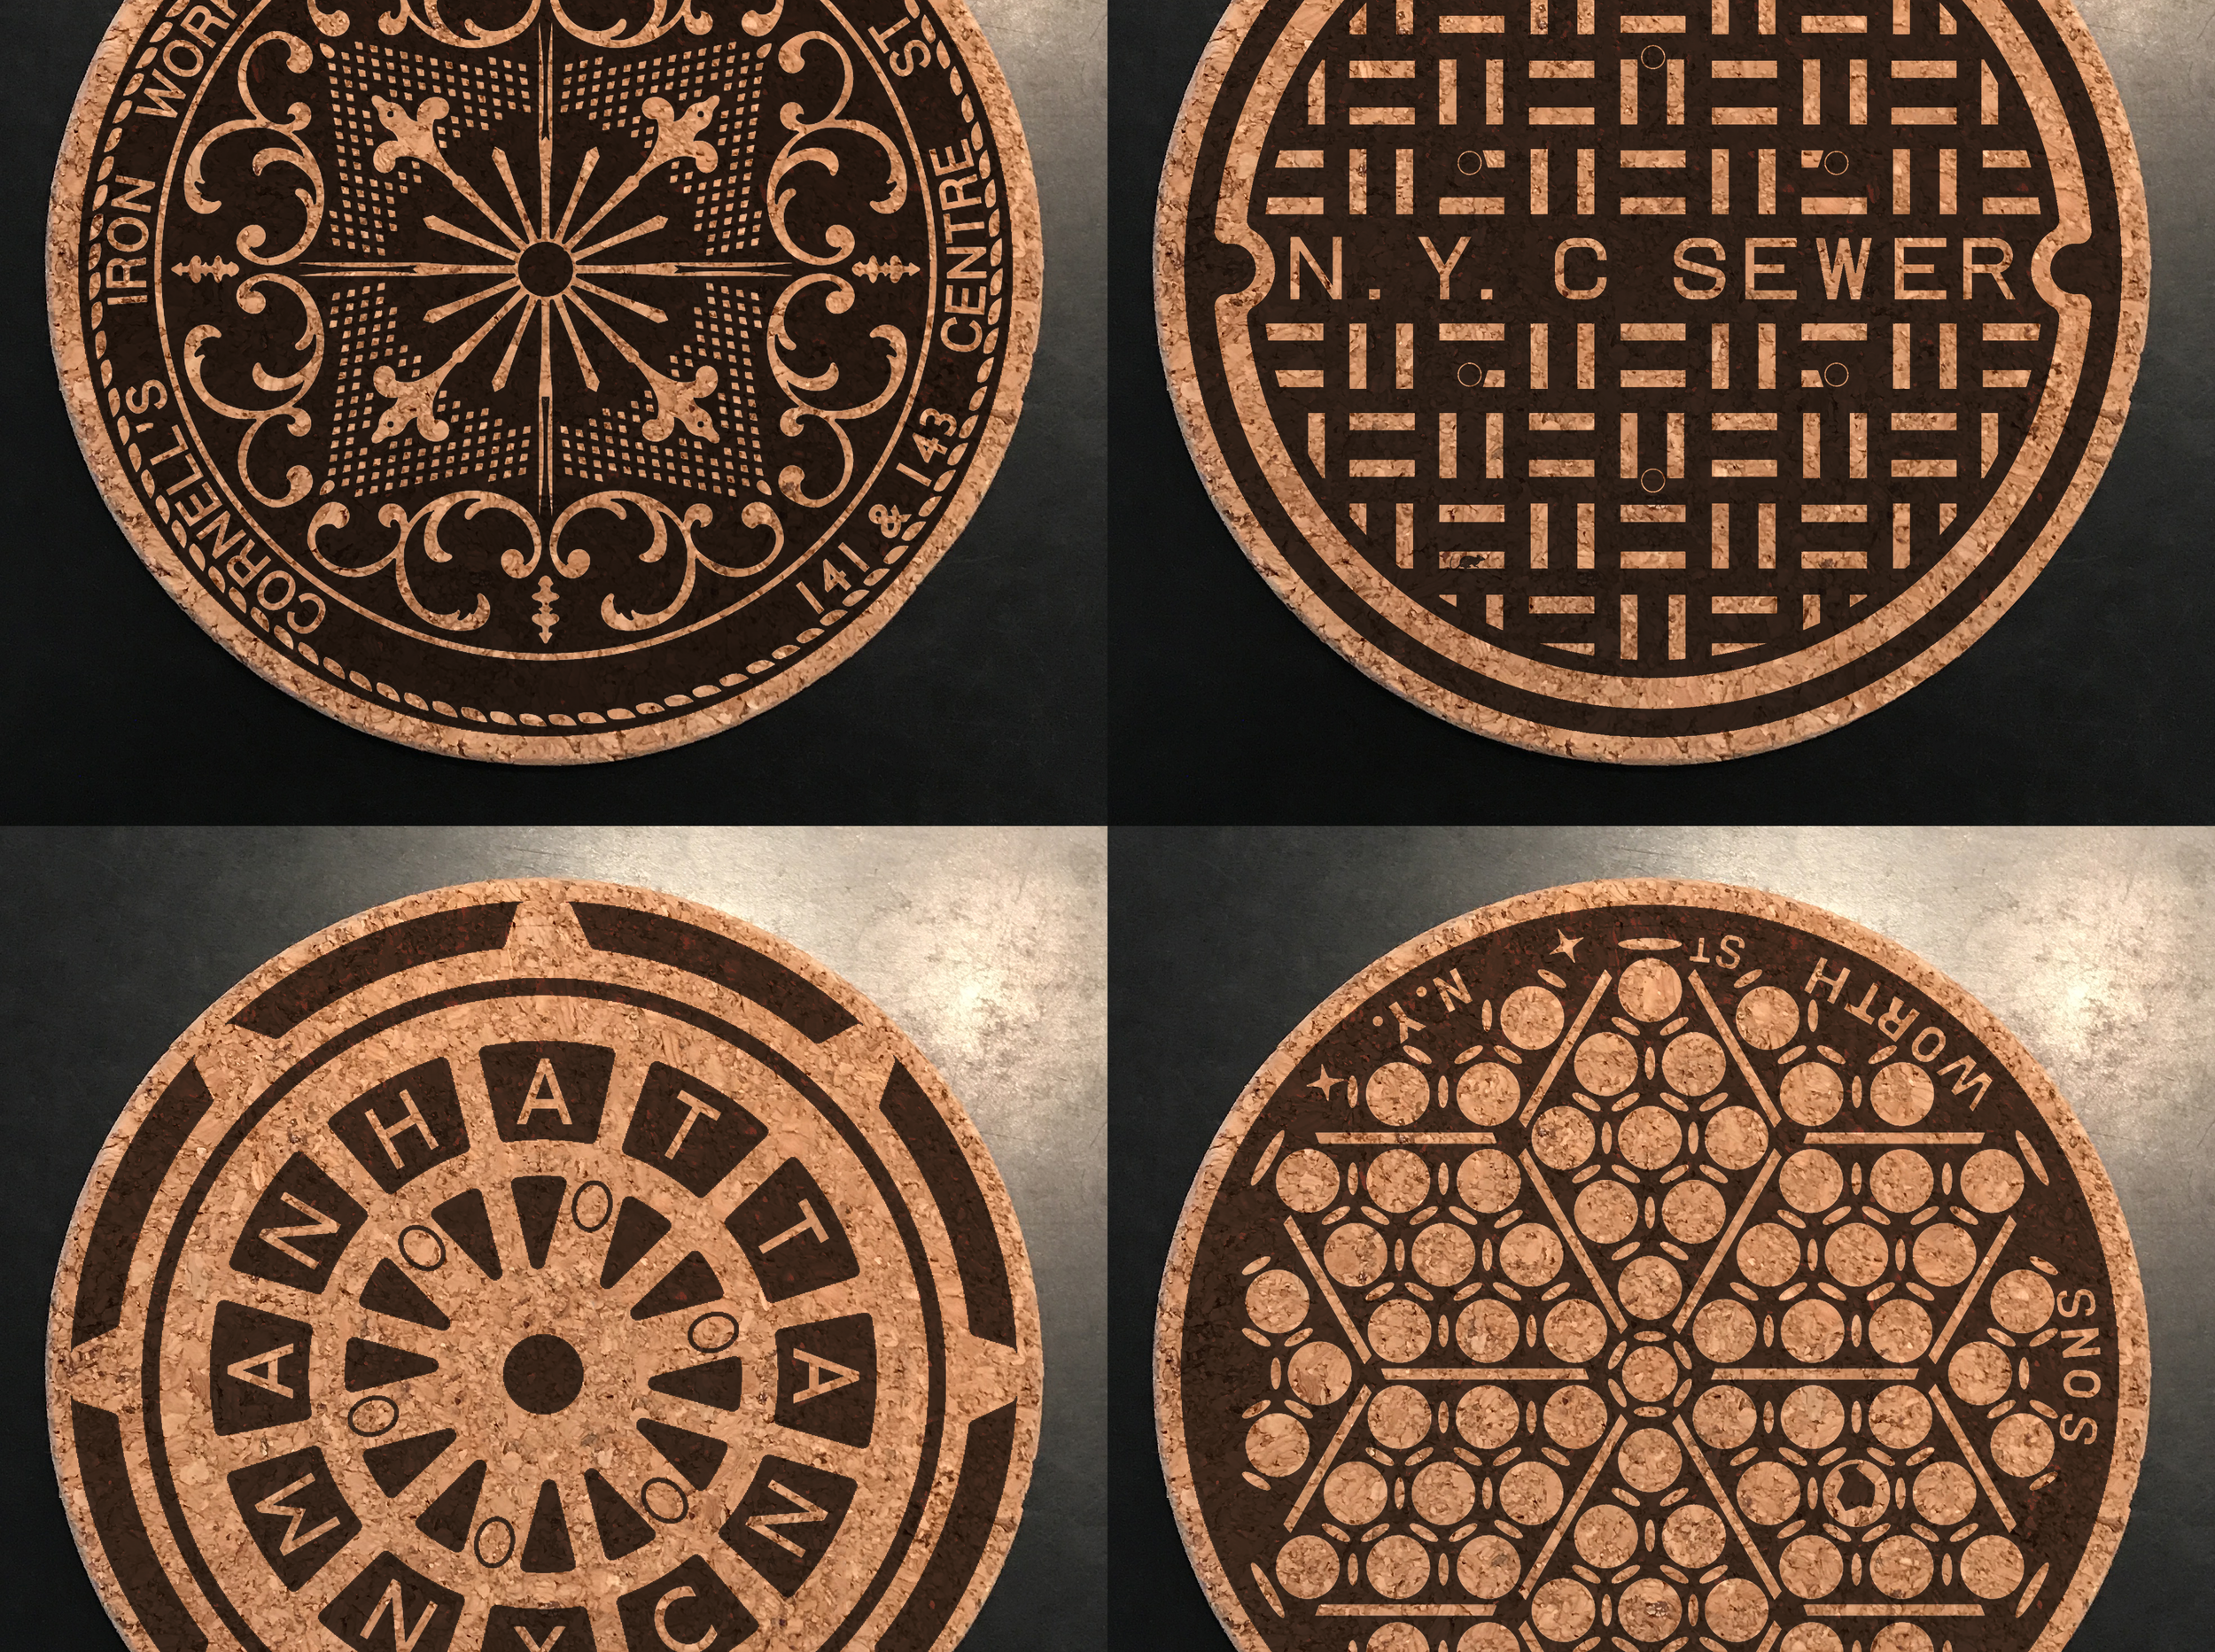 NYC Streets coaster sets and manhattan trivets now @ the tenement museum in NYC - The NYC street series is based on the manhole covers within walking distance from the Tenement Museum.